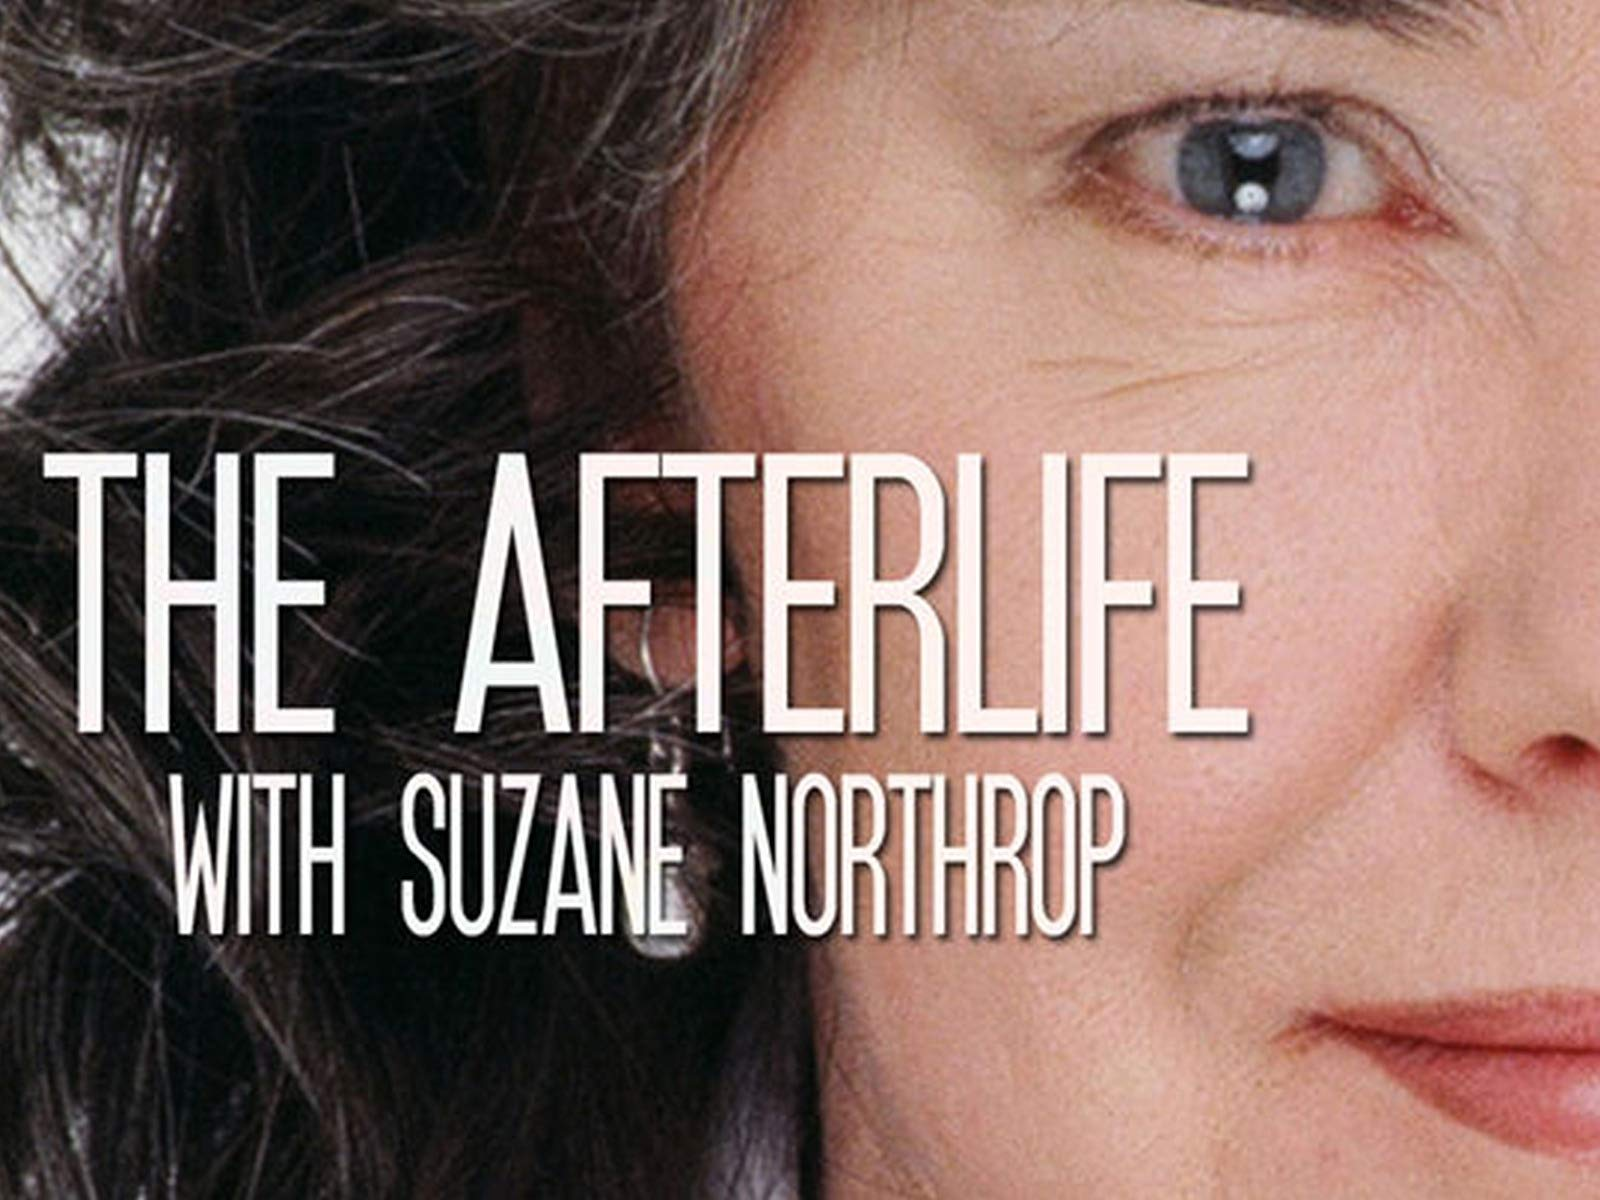 The Afterlife with Suzane Northrop on Amazon Prime Video UK